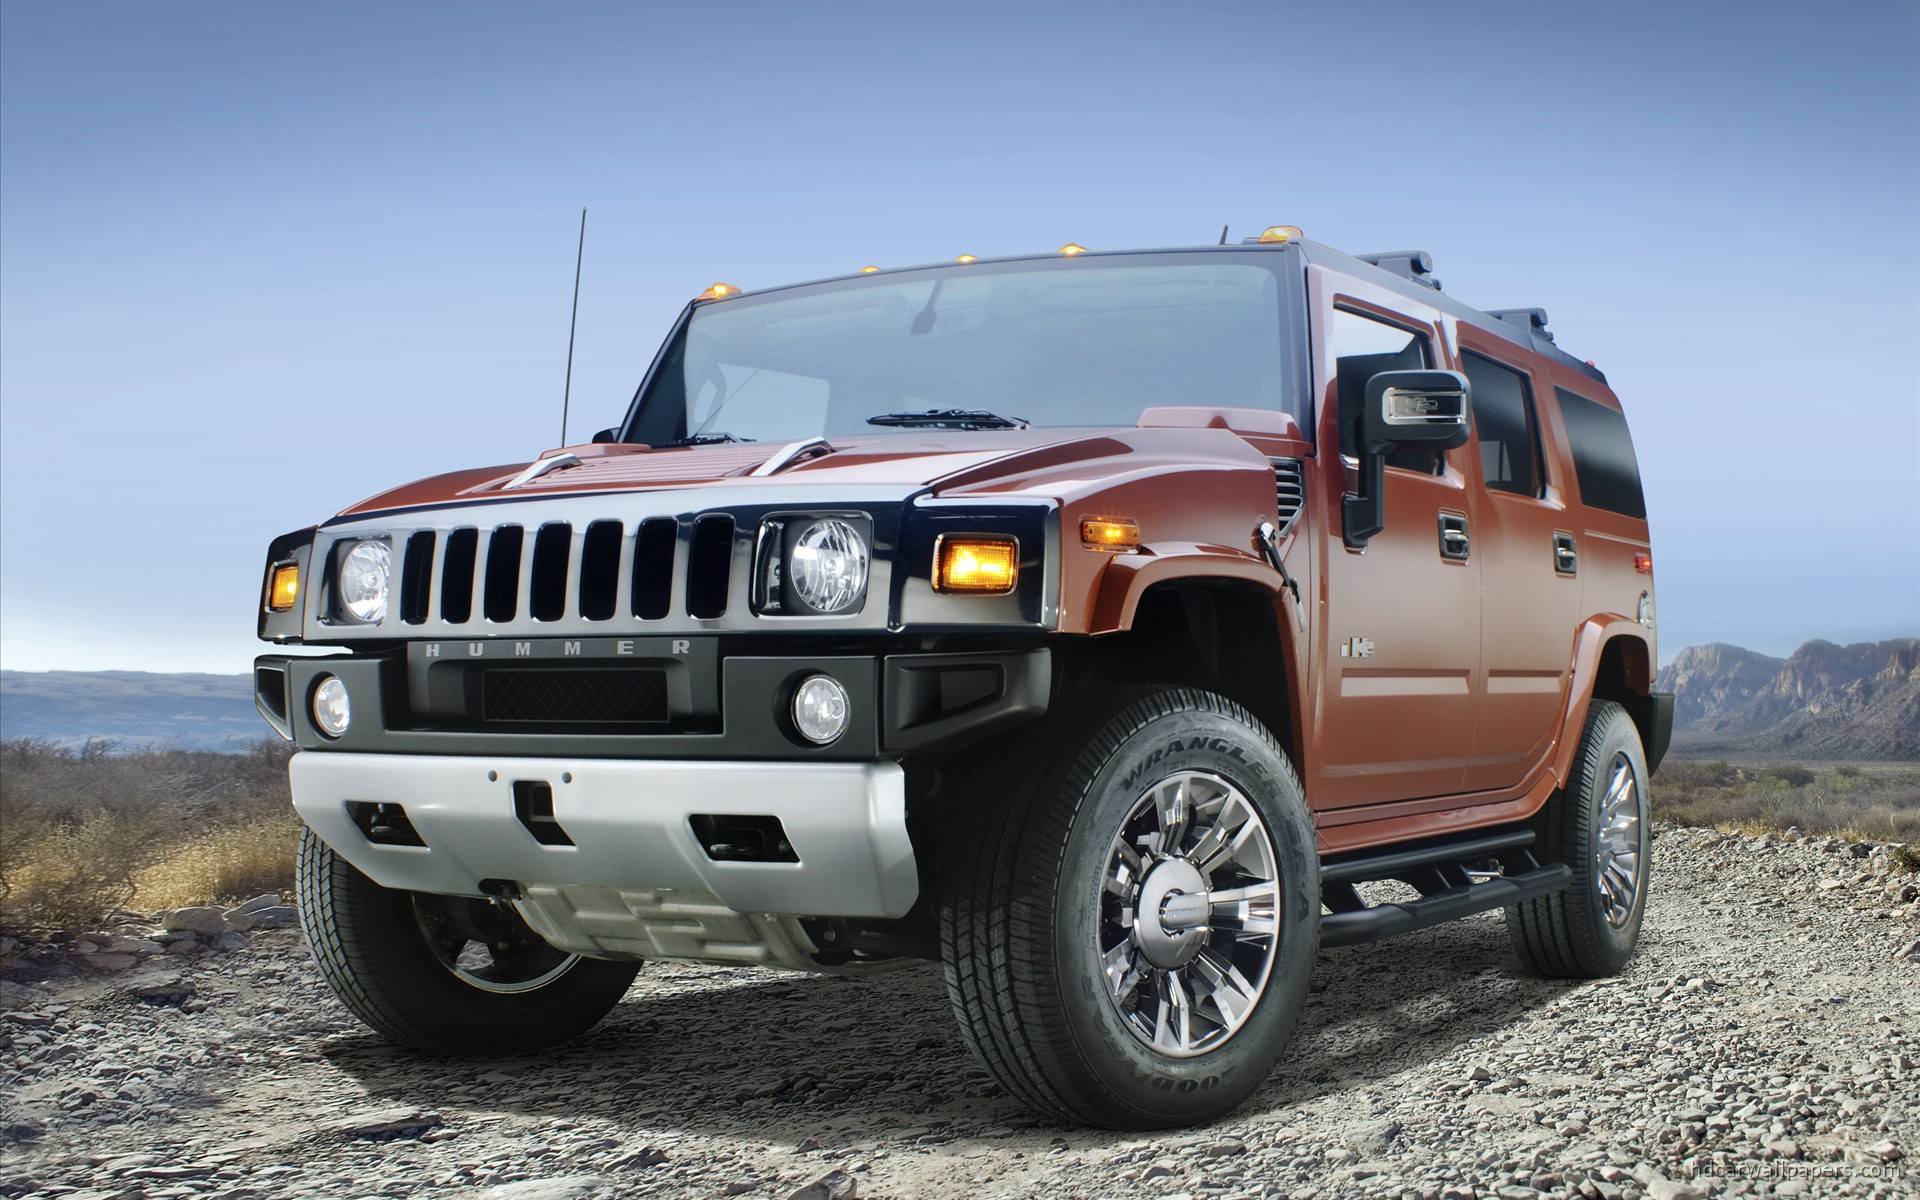 hummer wallpapers photos and desktop backgrounds up to 8K